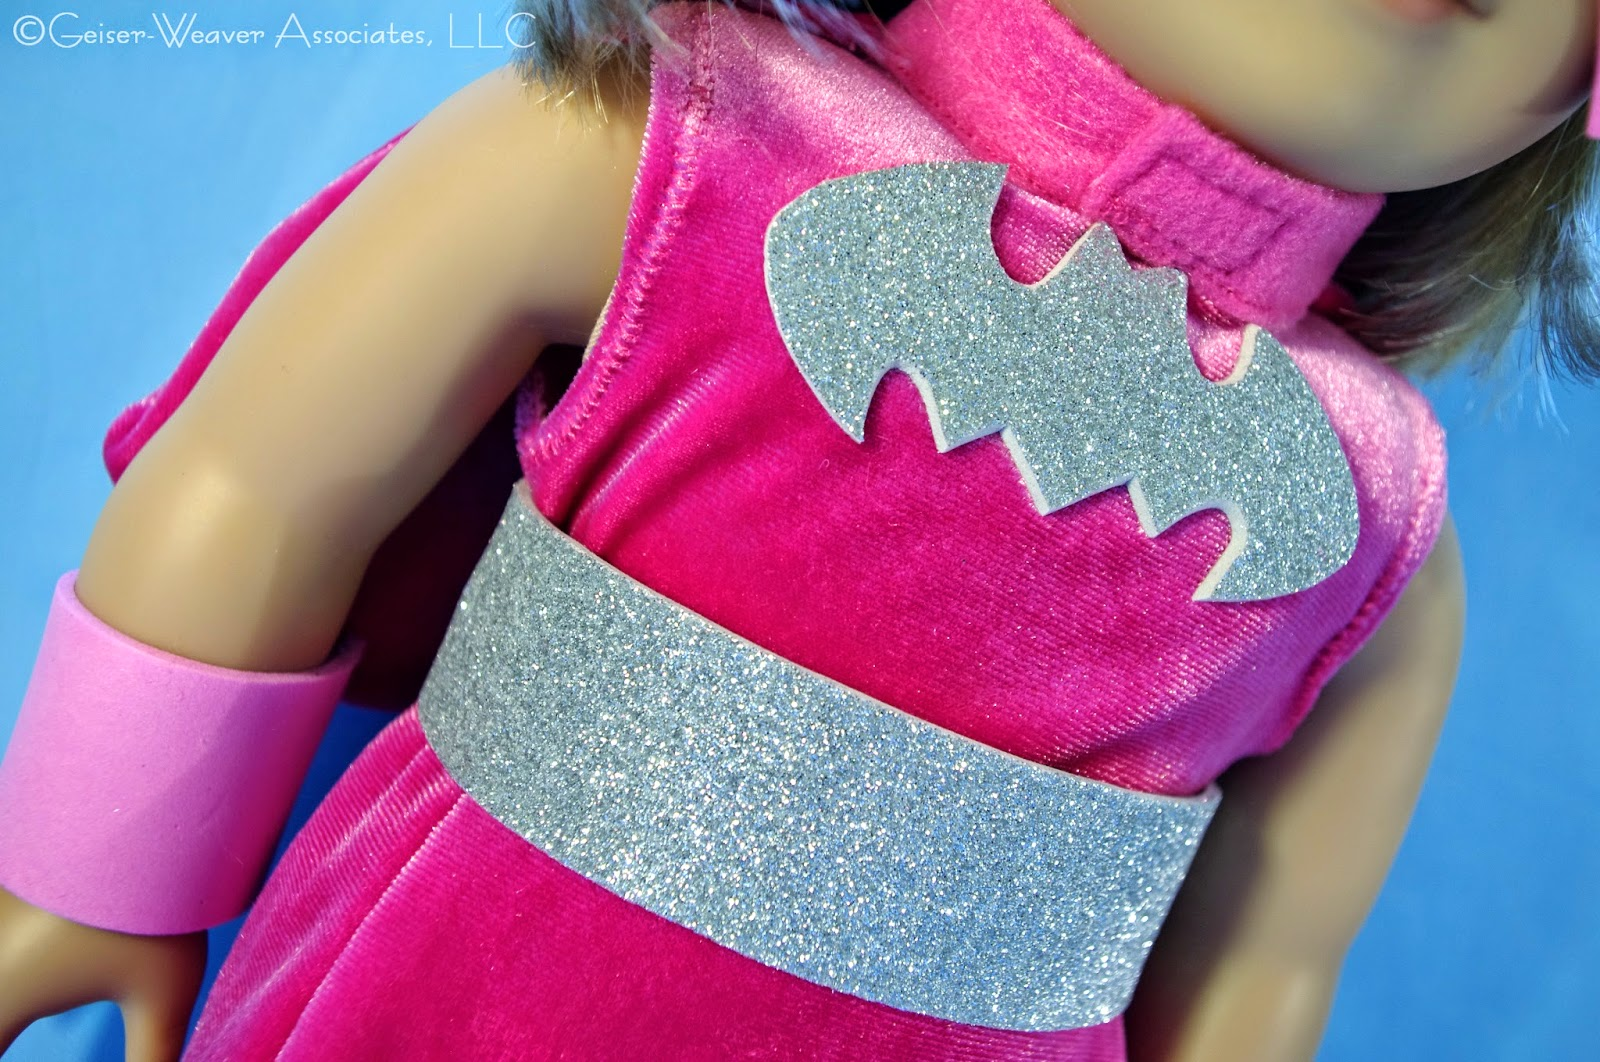 Pink Batgirl doll costume by Geiser-Weaver Associates, LLC